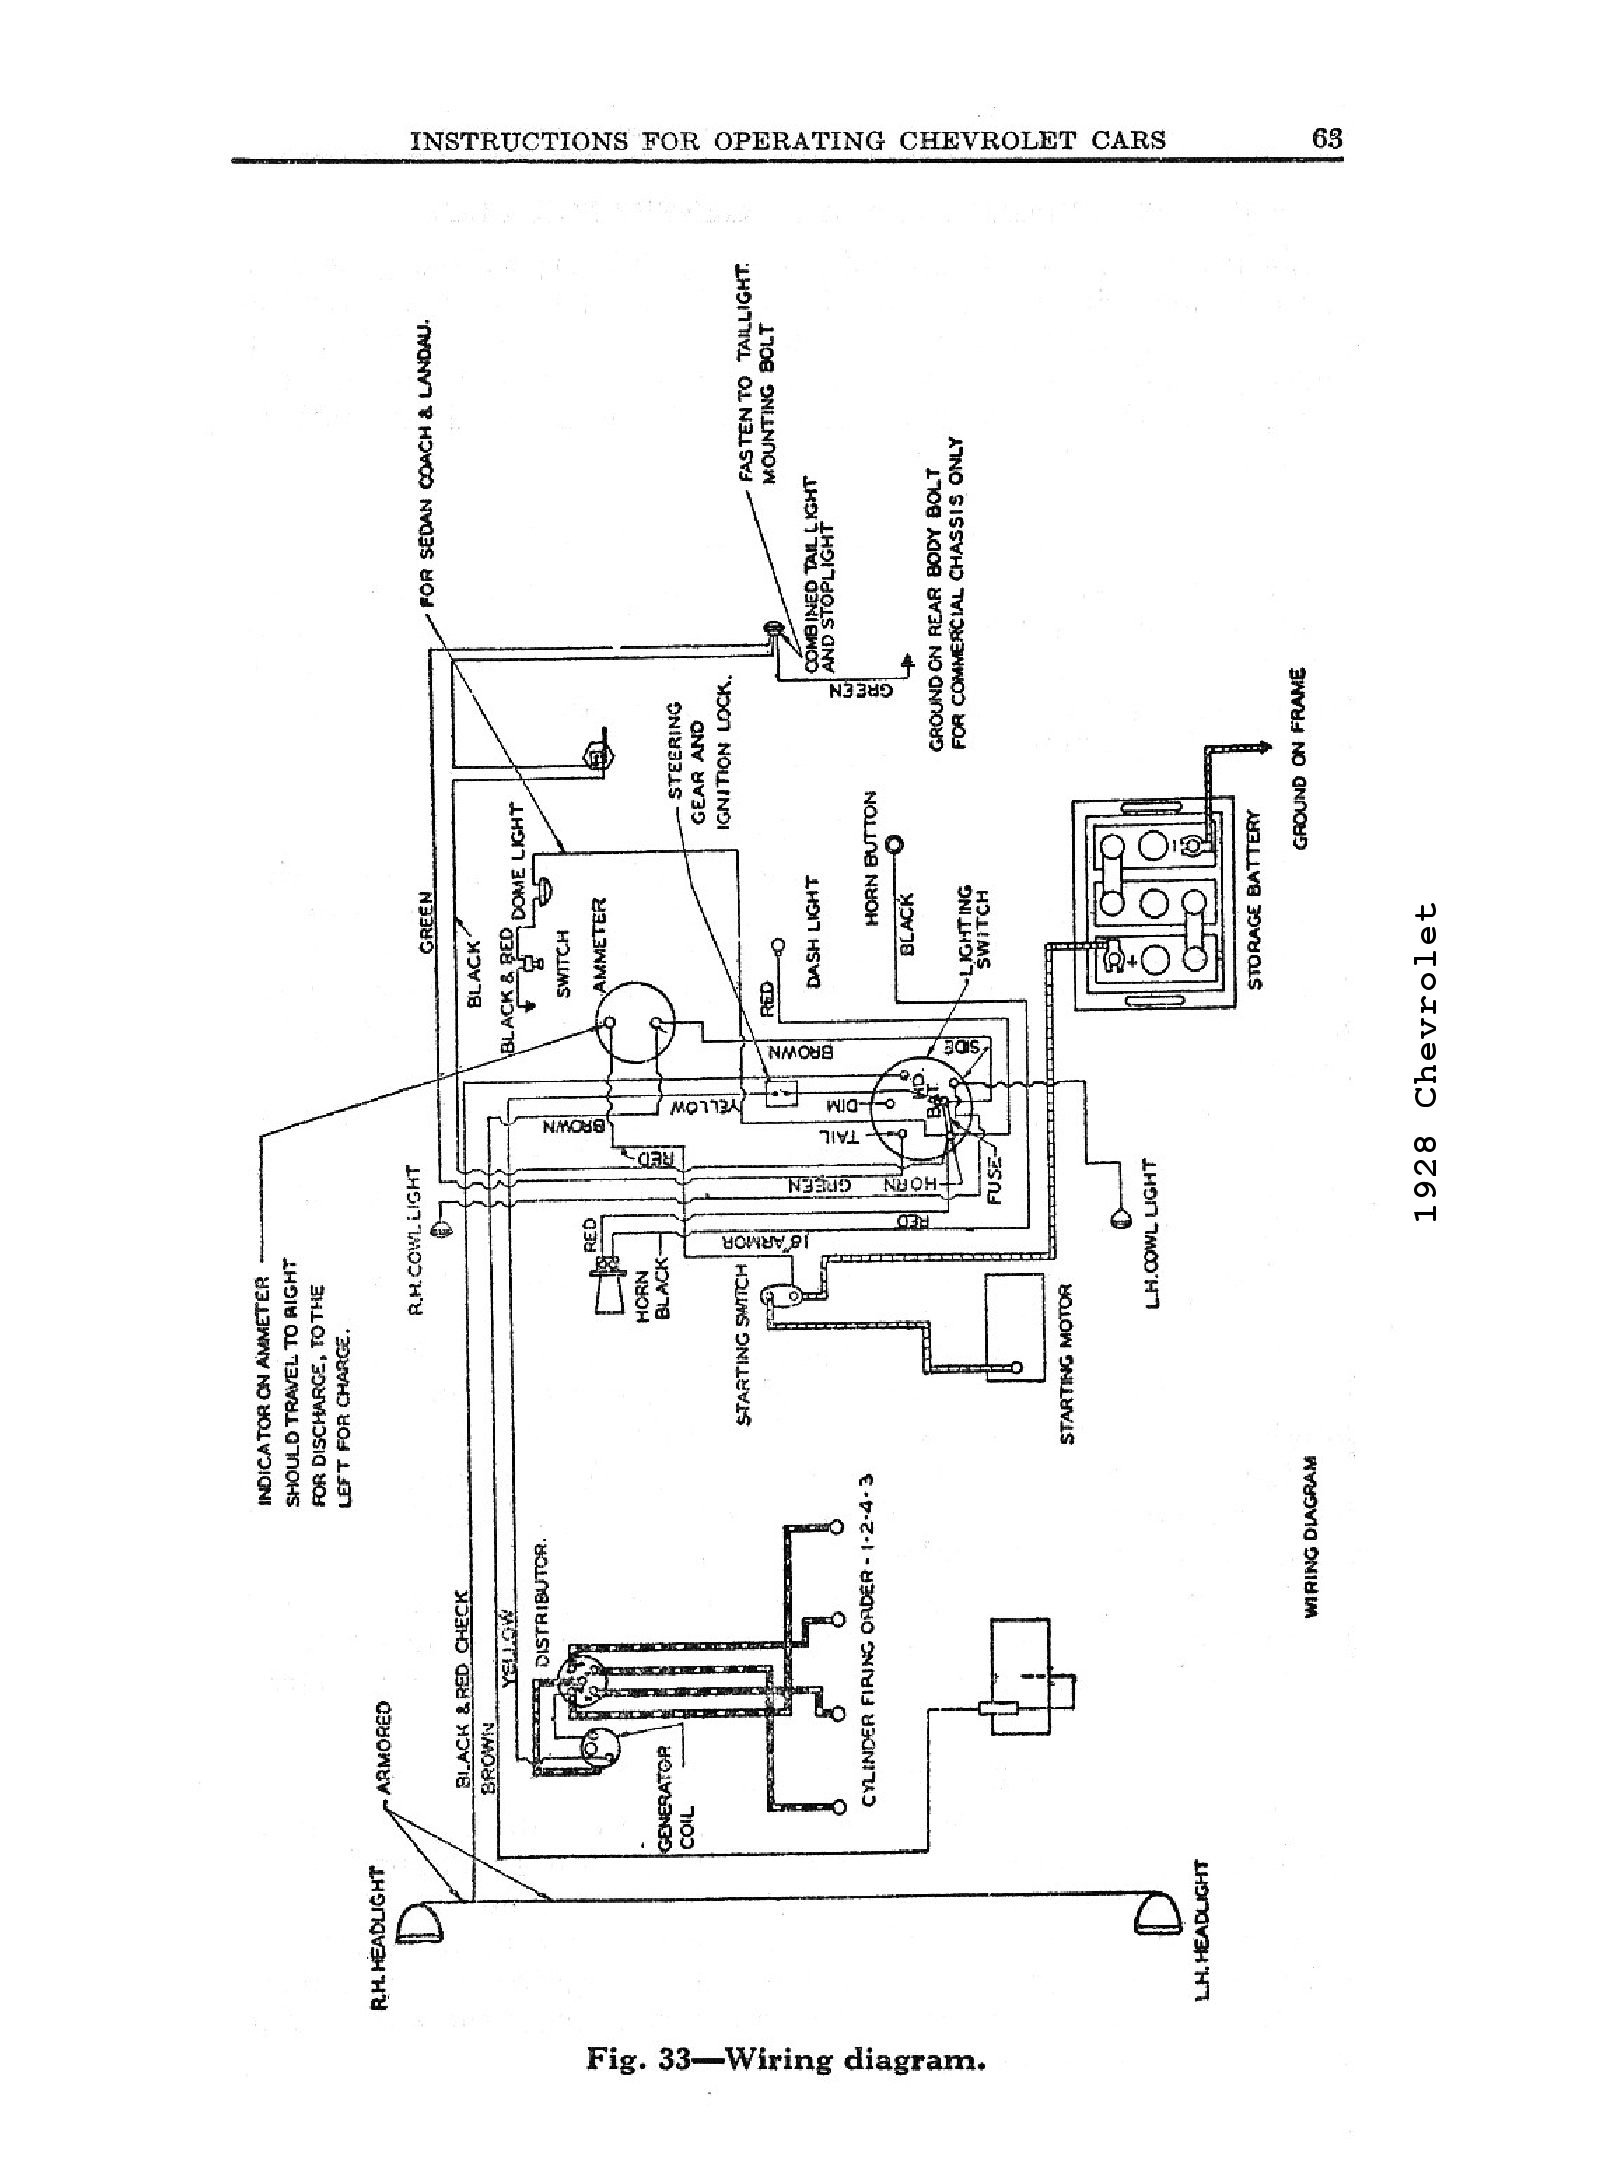 Cim on 1959 Bel Air Wiring Diagram